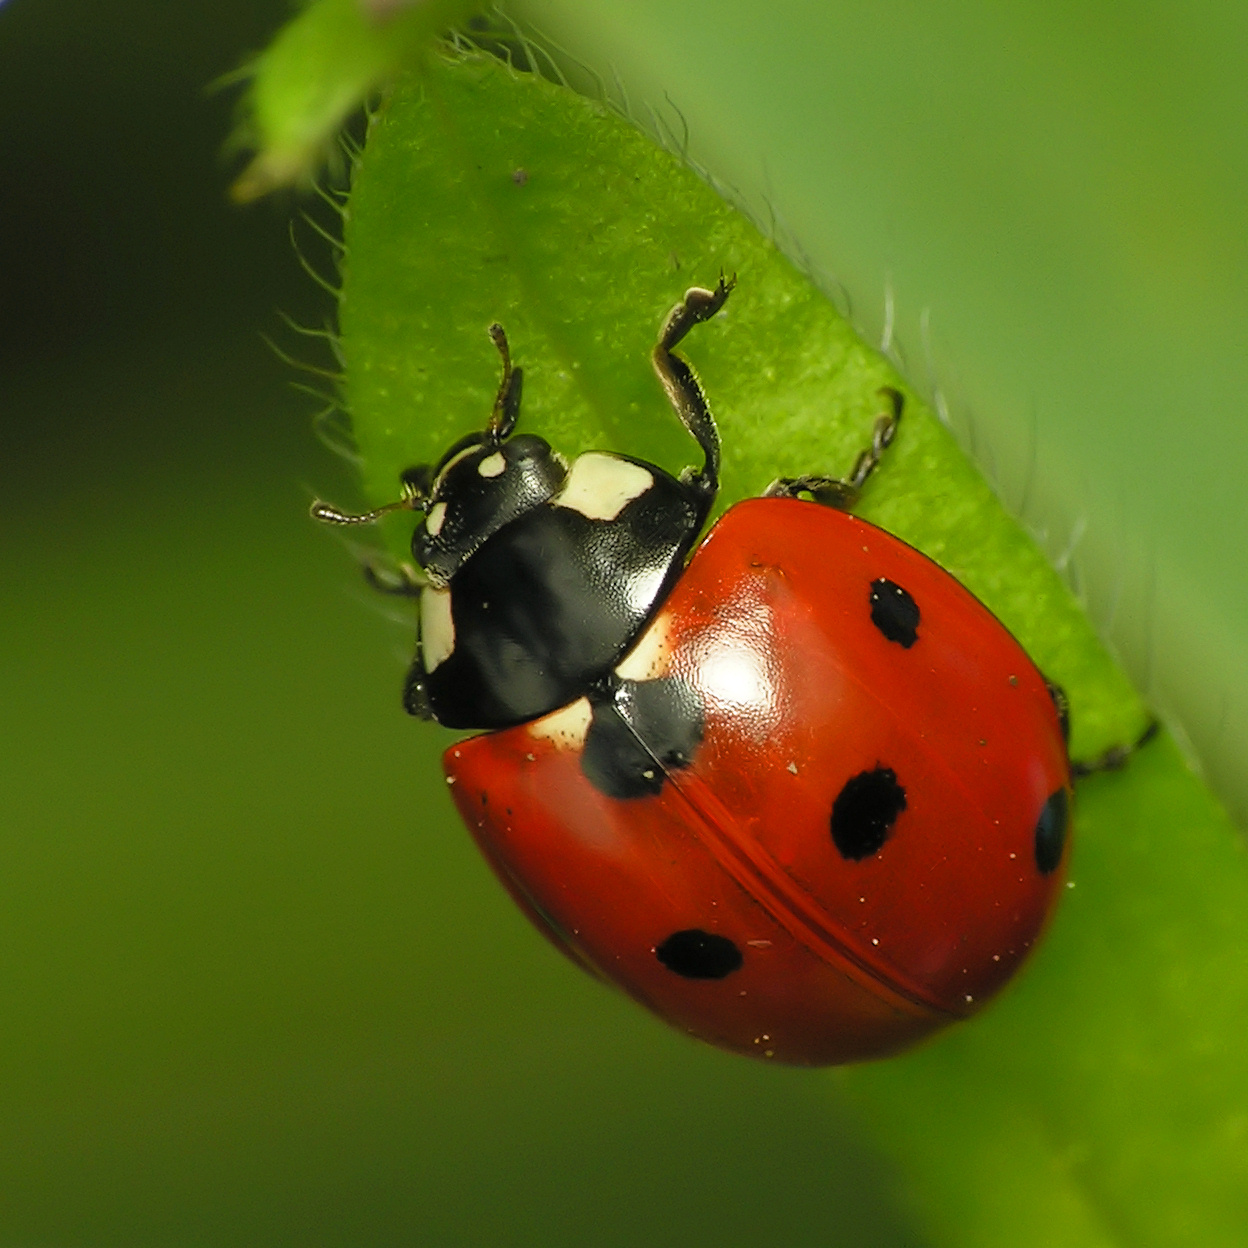 lucky lady bird